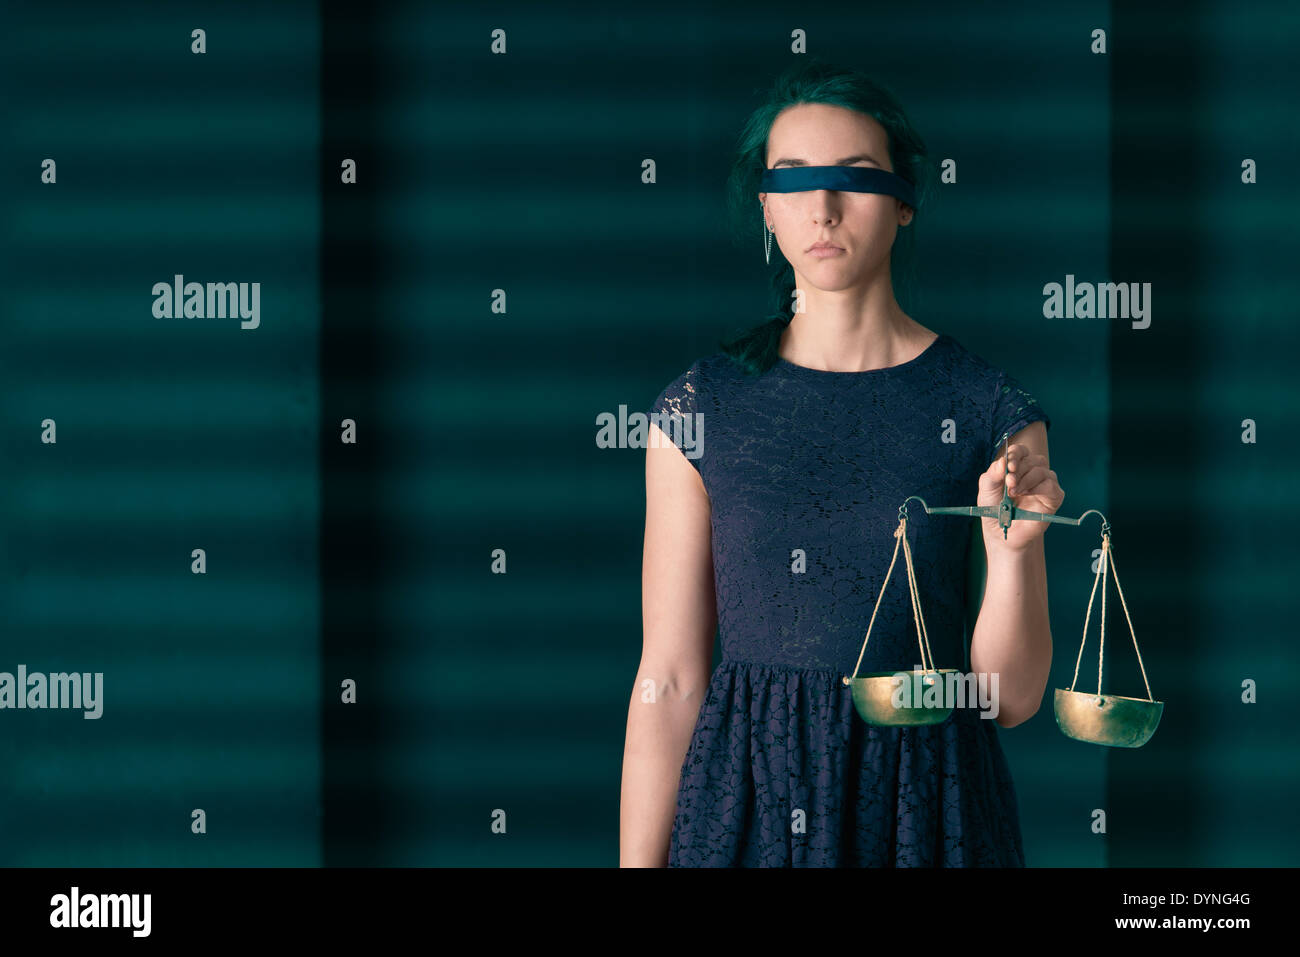 Lady Justice (Justitia) blindfolded holding waight scale. Concept image of law and being equal. - Stock Image